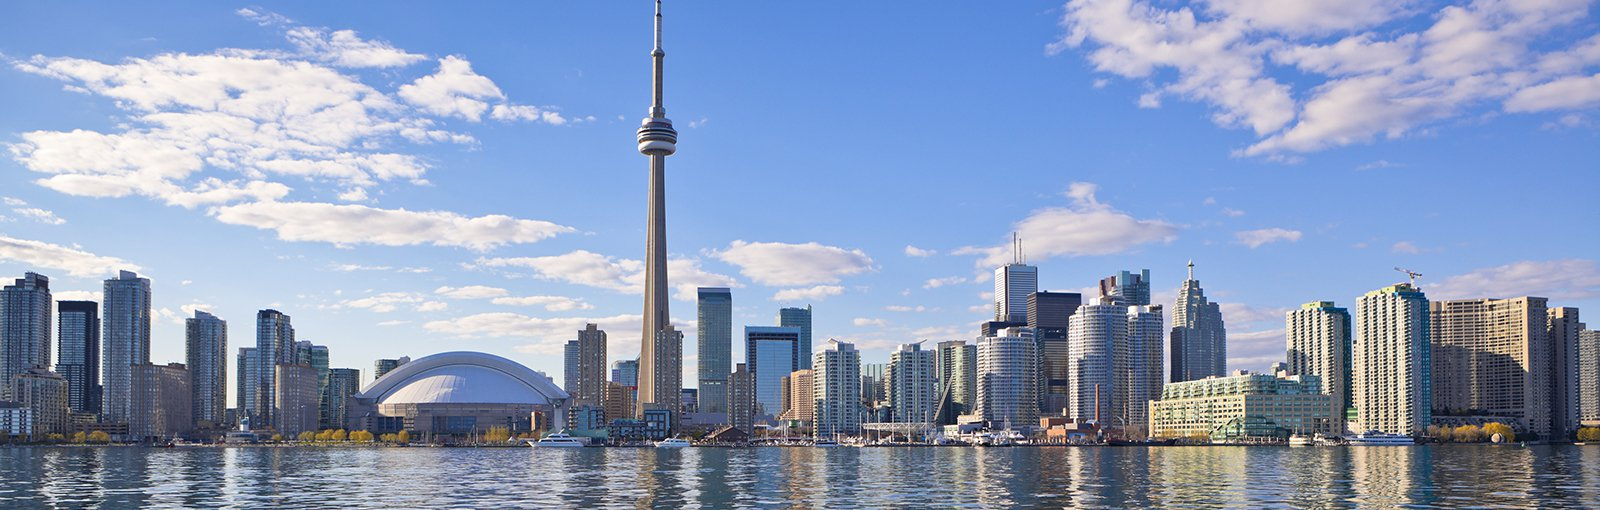 Toronto Data Centres & Colocation